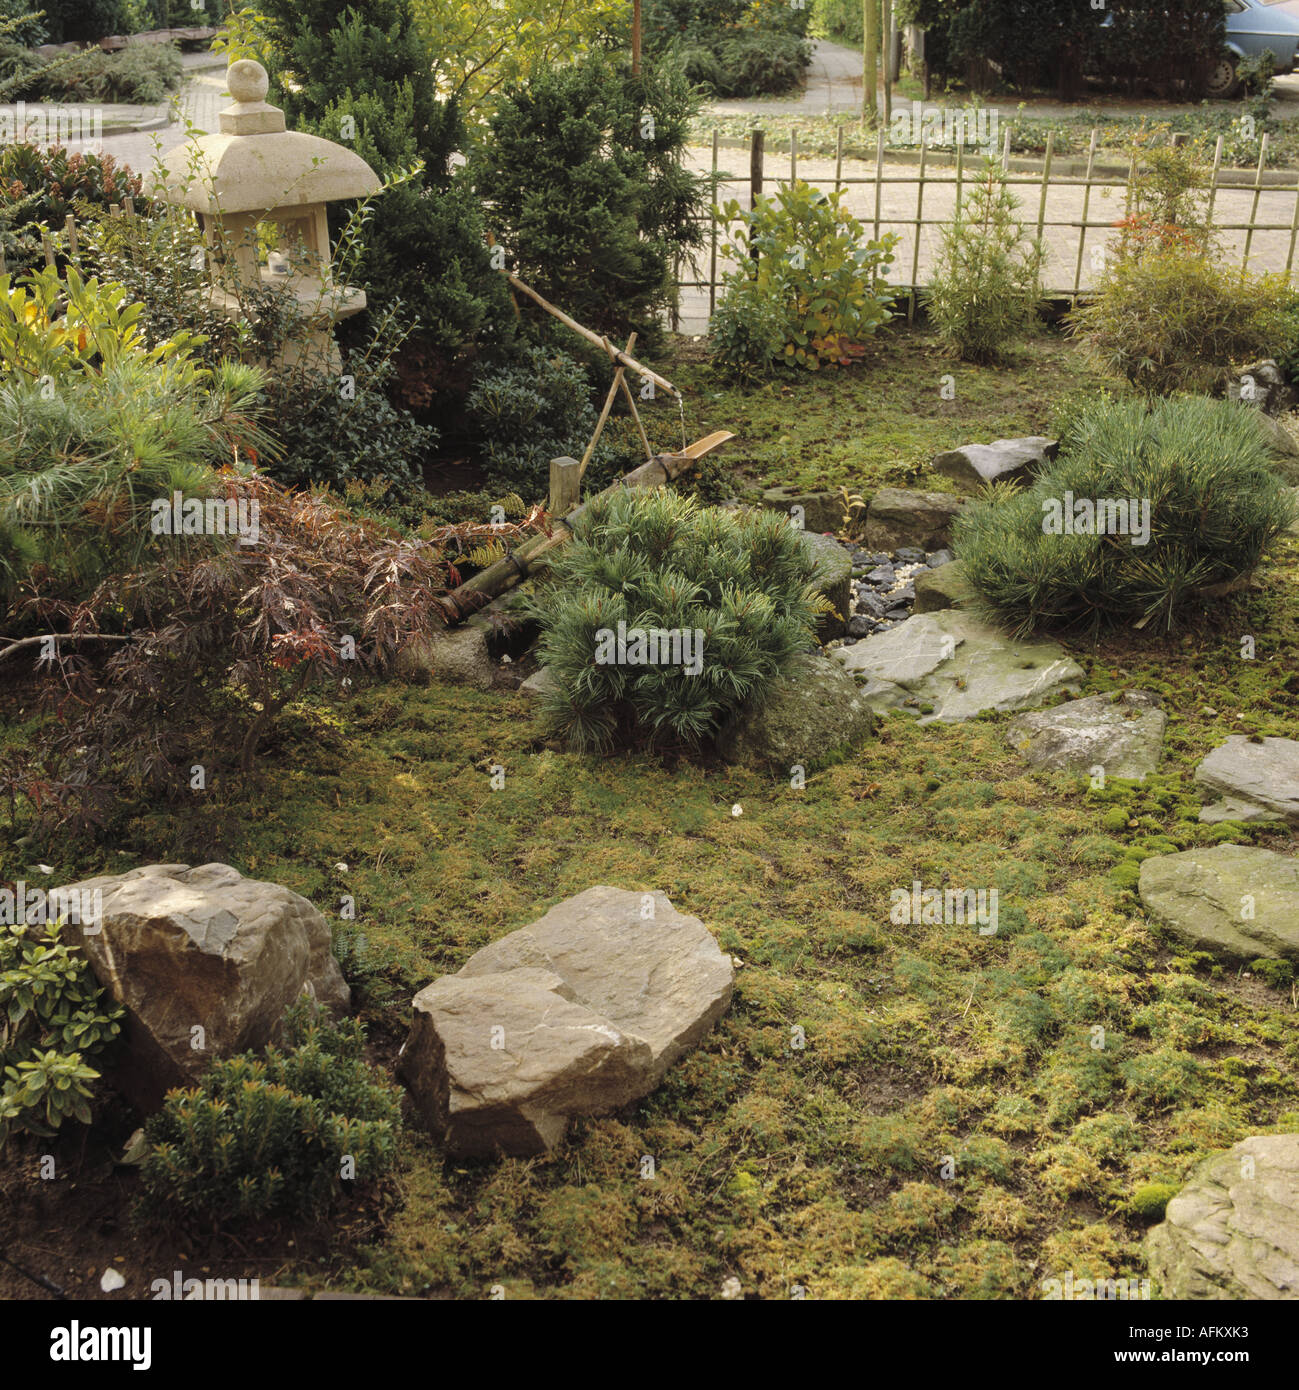 Large Natural Rocks And Small Bamboo Water Feature In Oriental Style Garden  With Japanese Stone Lantern And Low Growing Conifers